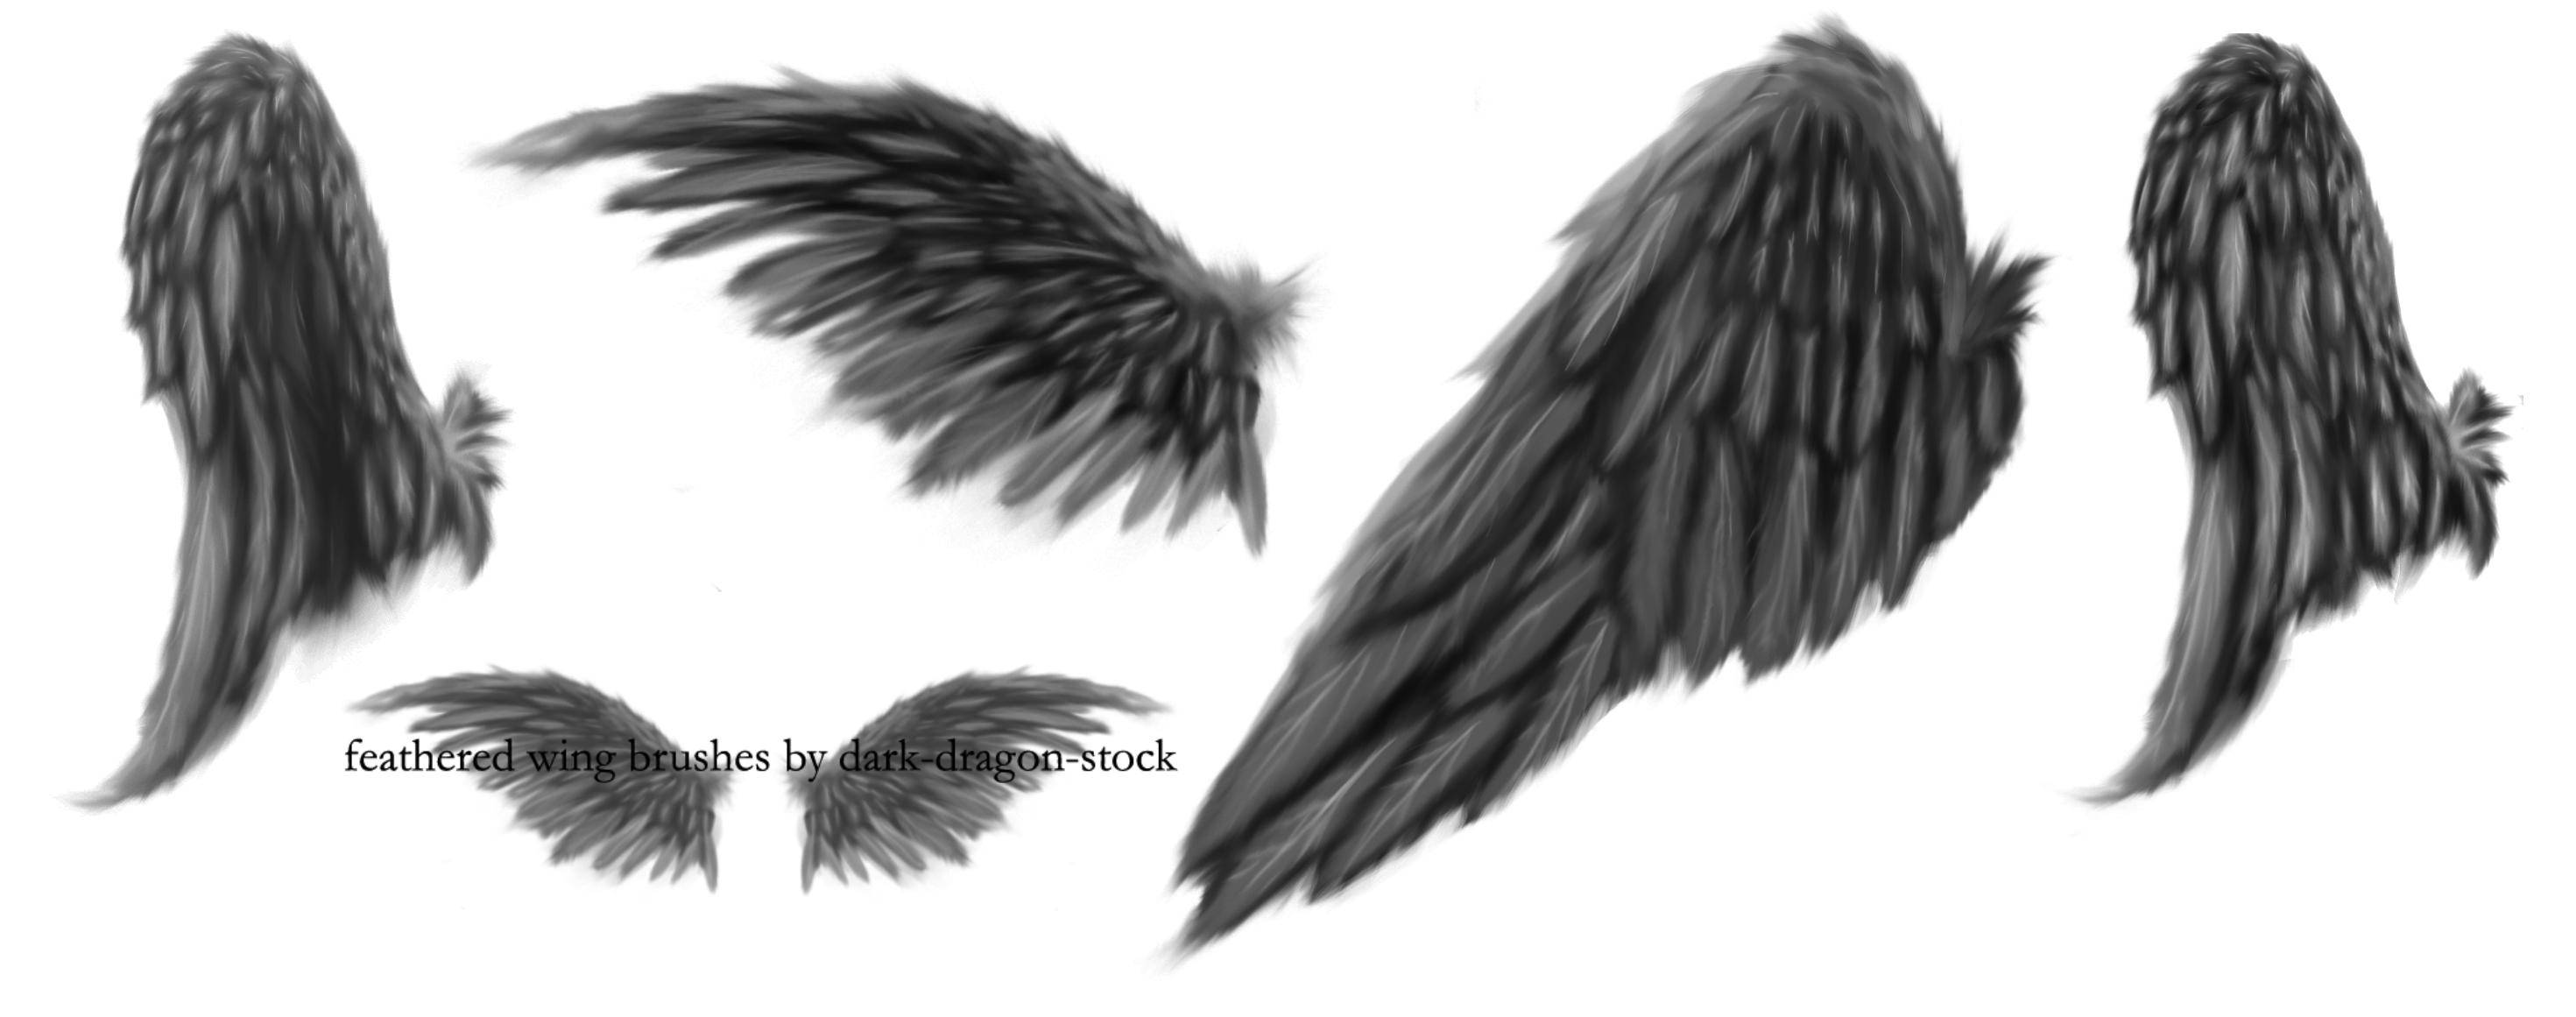 feathered wing brushes by dark-dragon-stock